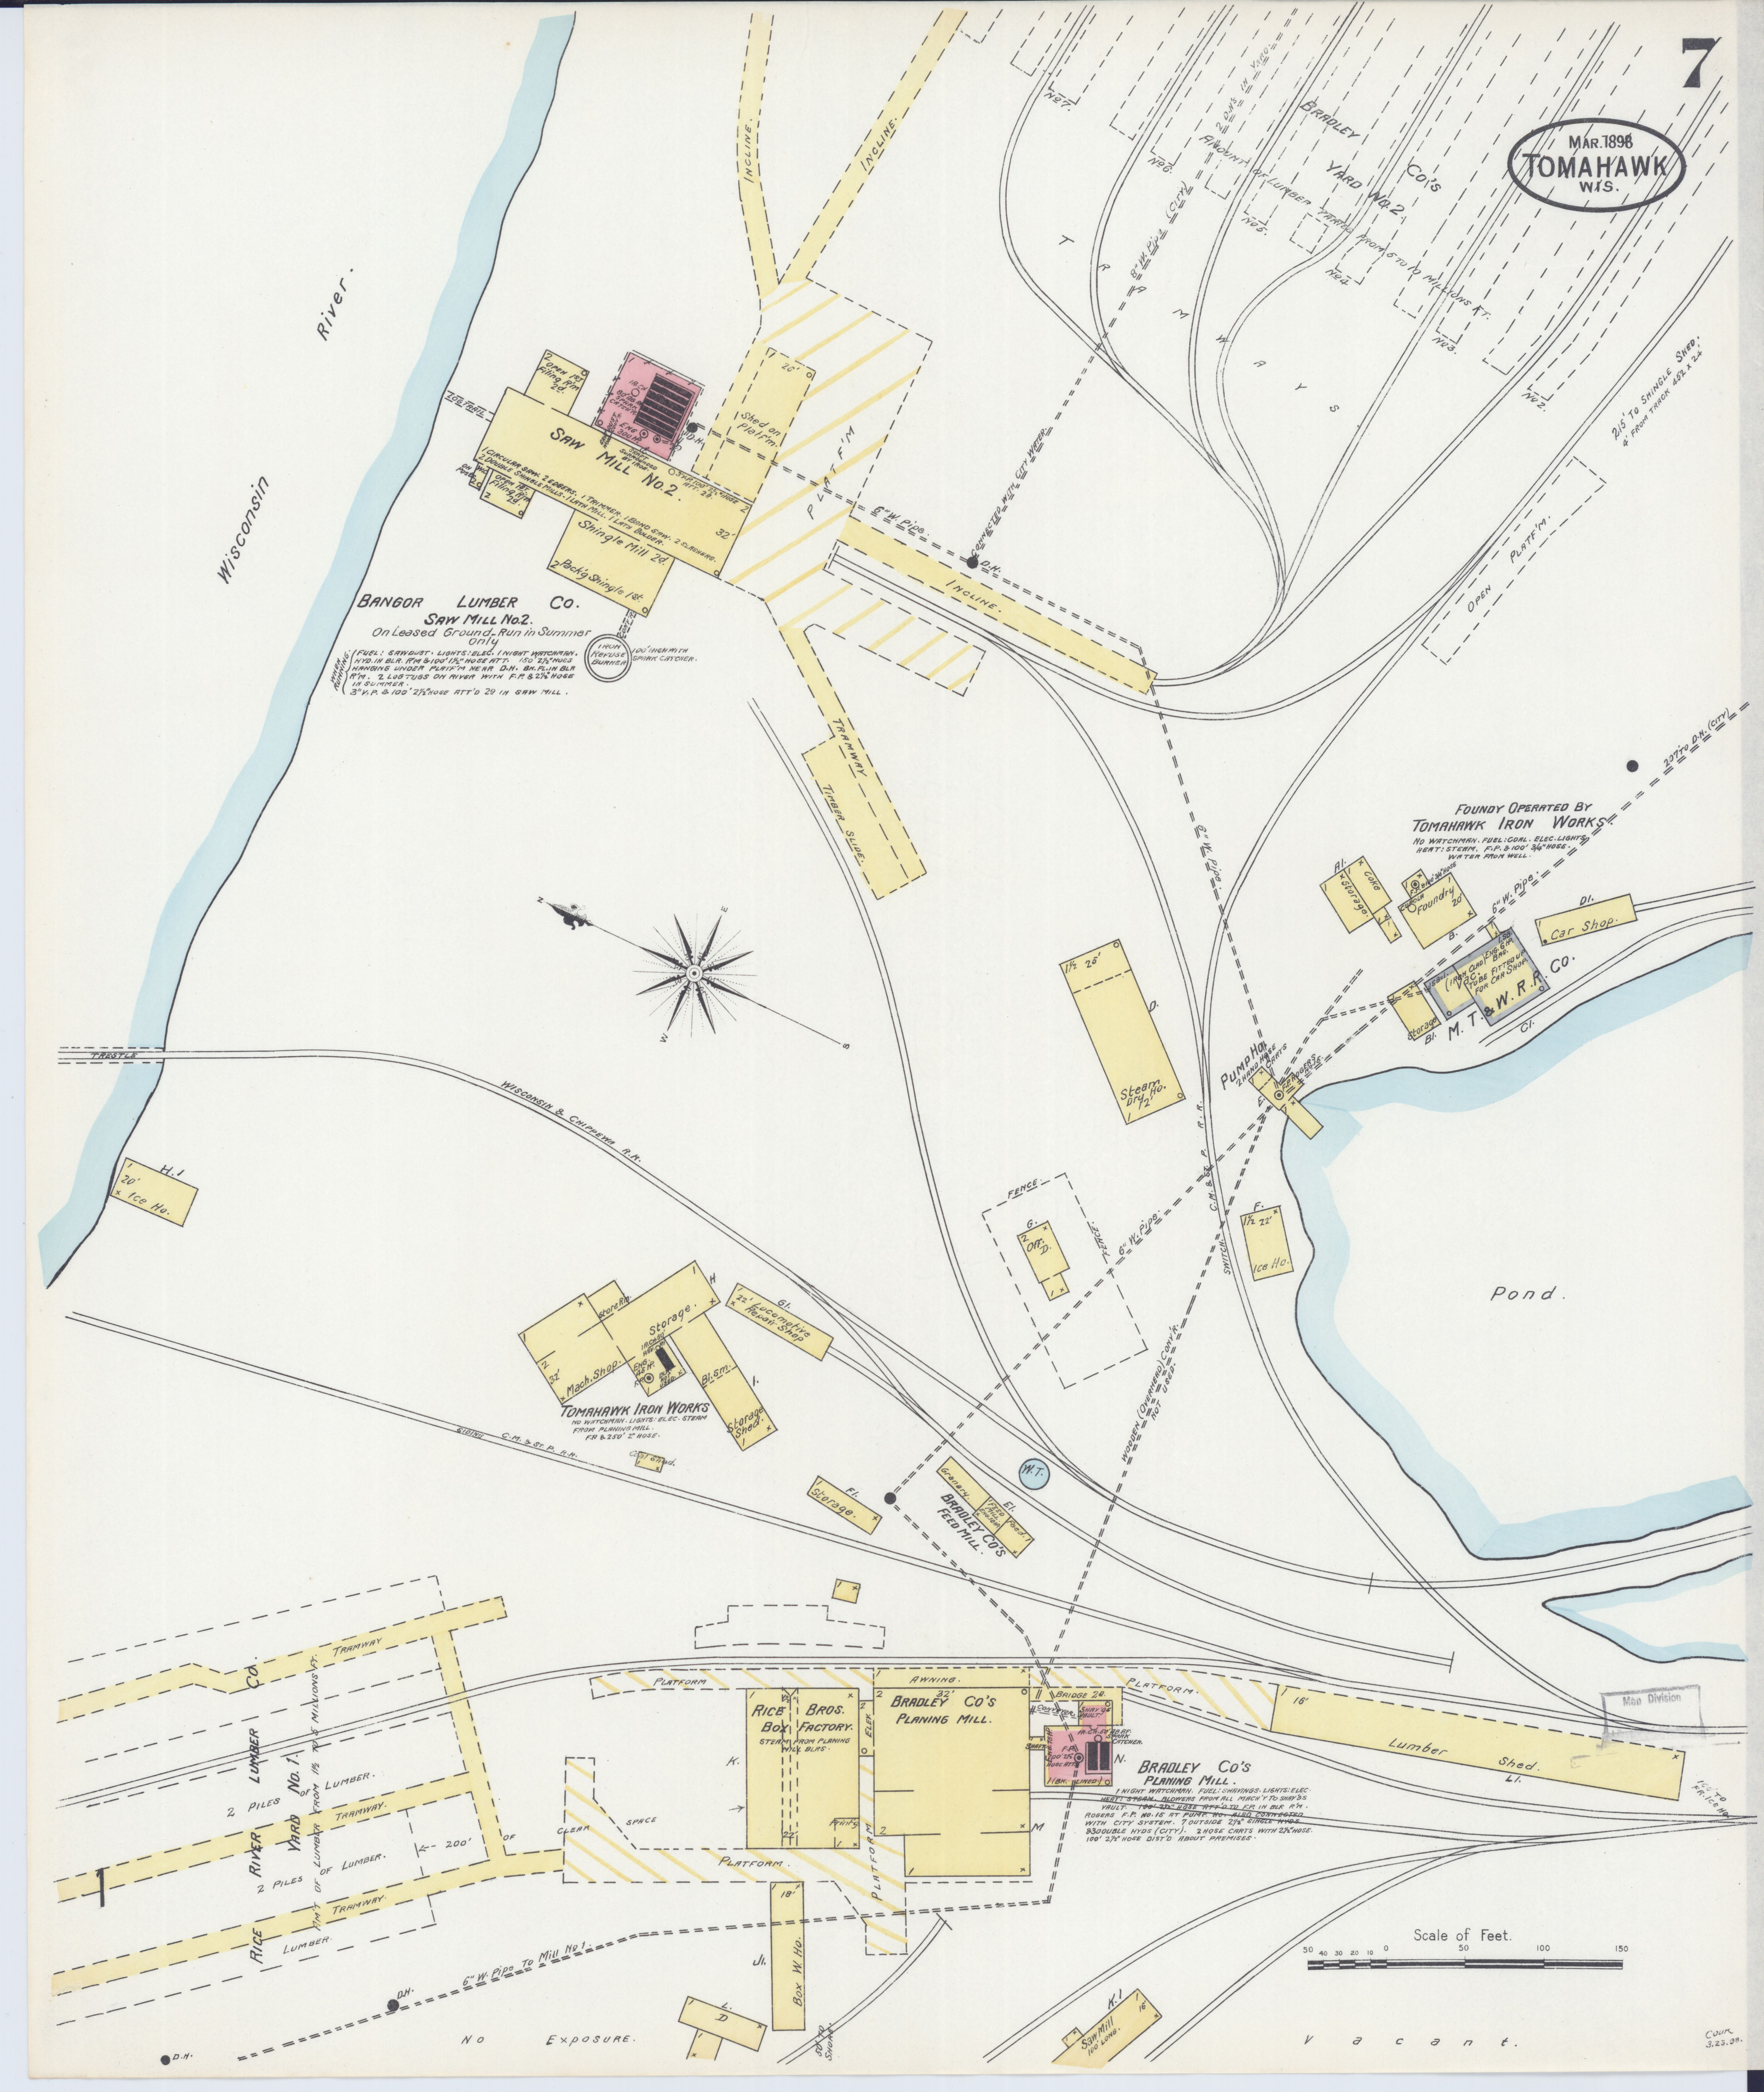 Tomahawk Wisconsin Map.File Sanborn Fire Insurance Map From Tomahawk Lincoln County